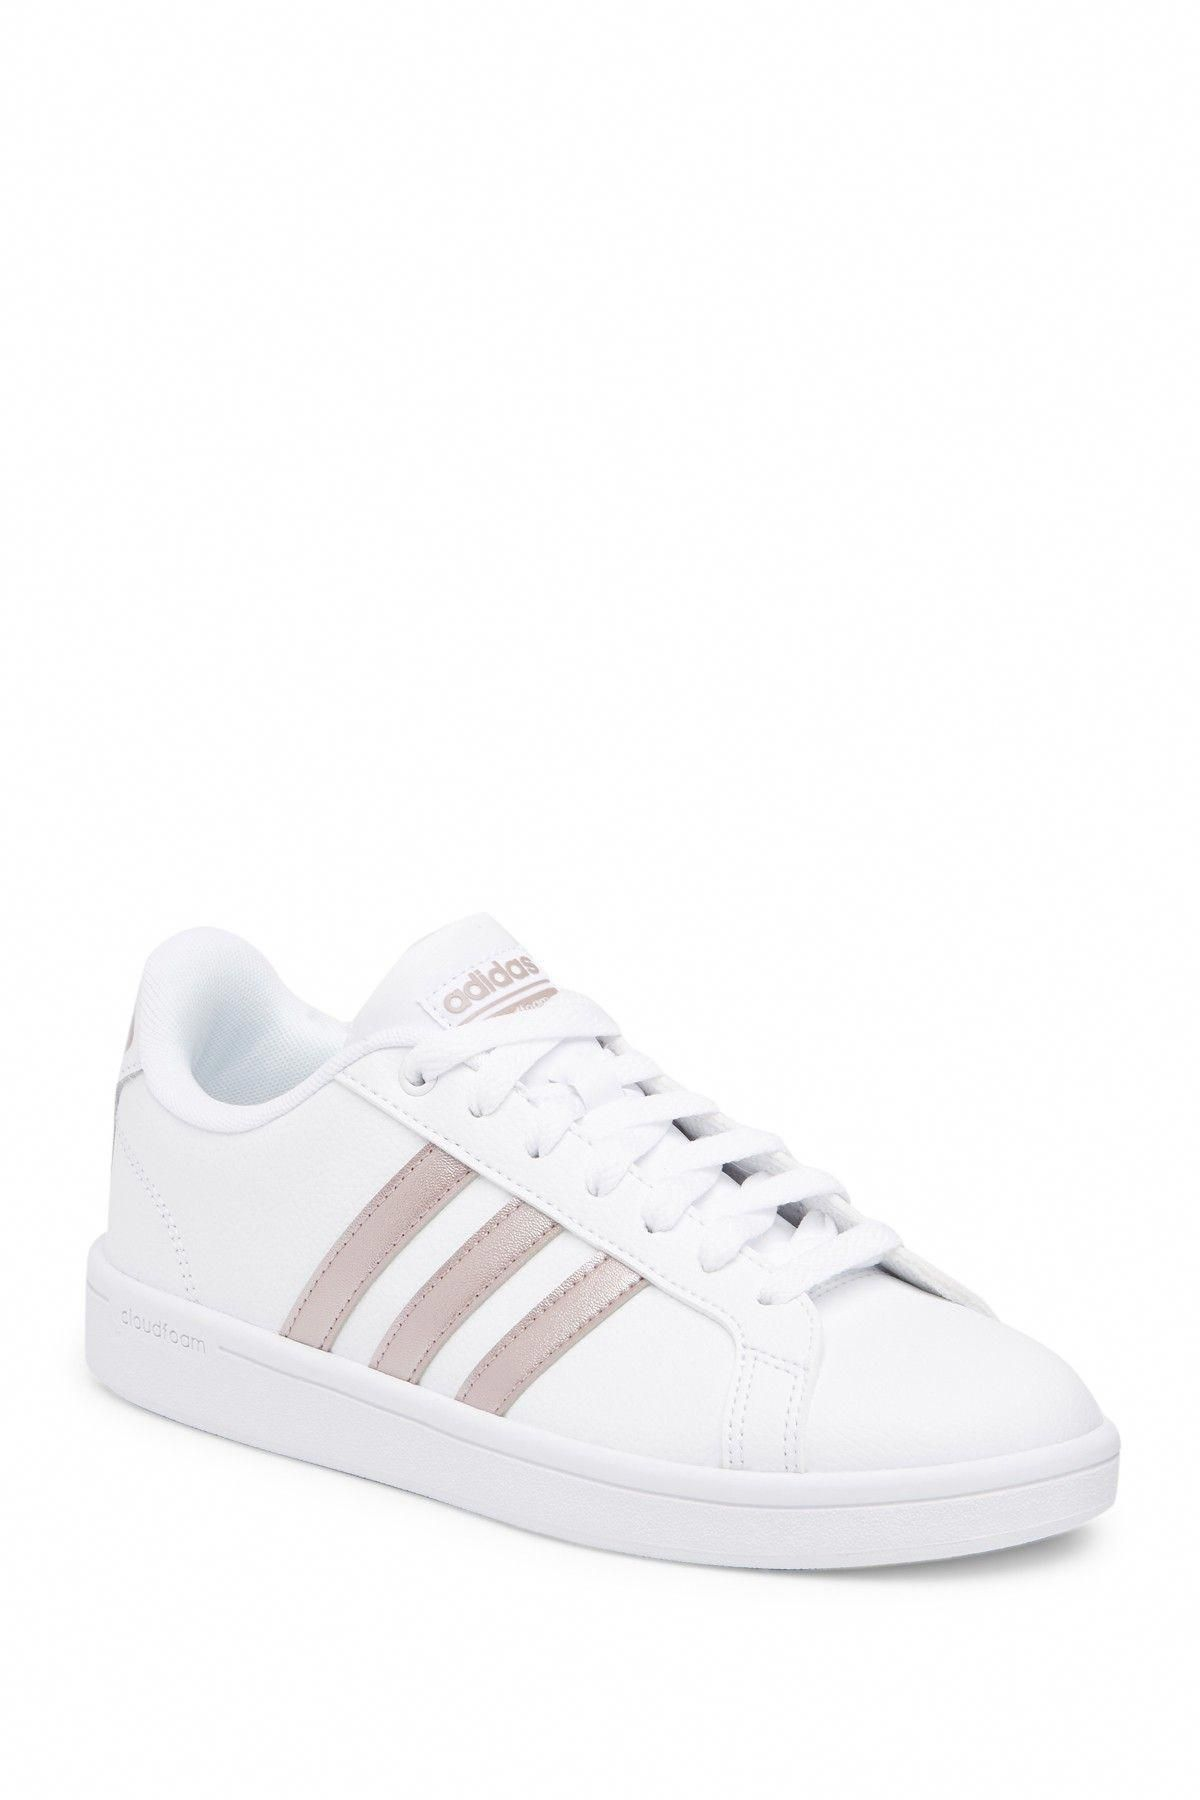 8ef5564ad roger vivier shoes for women. sneakers and stuff returns. adidas -  Cloudfoam Advantage Sneaker is now 23% off. Free Shipping on orders over   100.  Sneakers